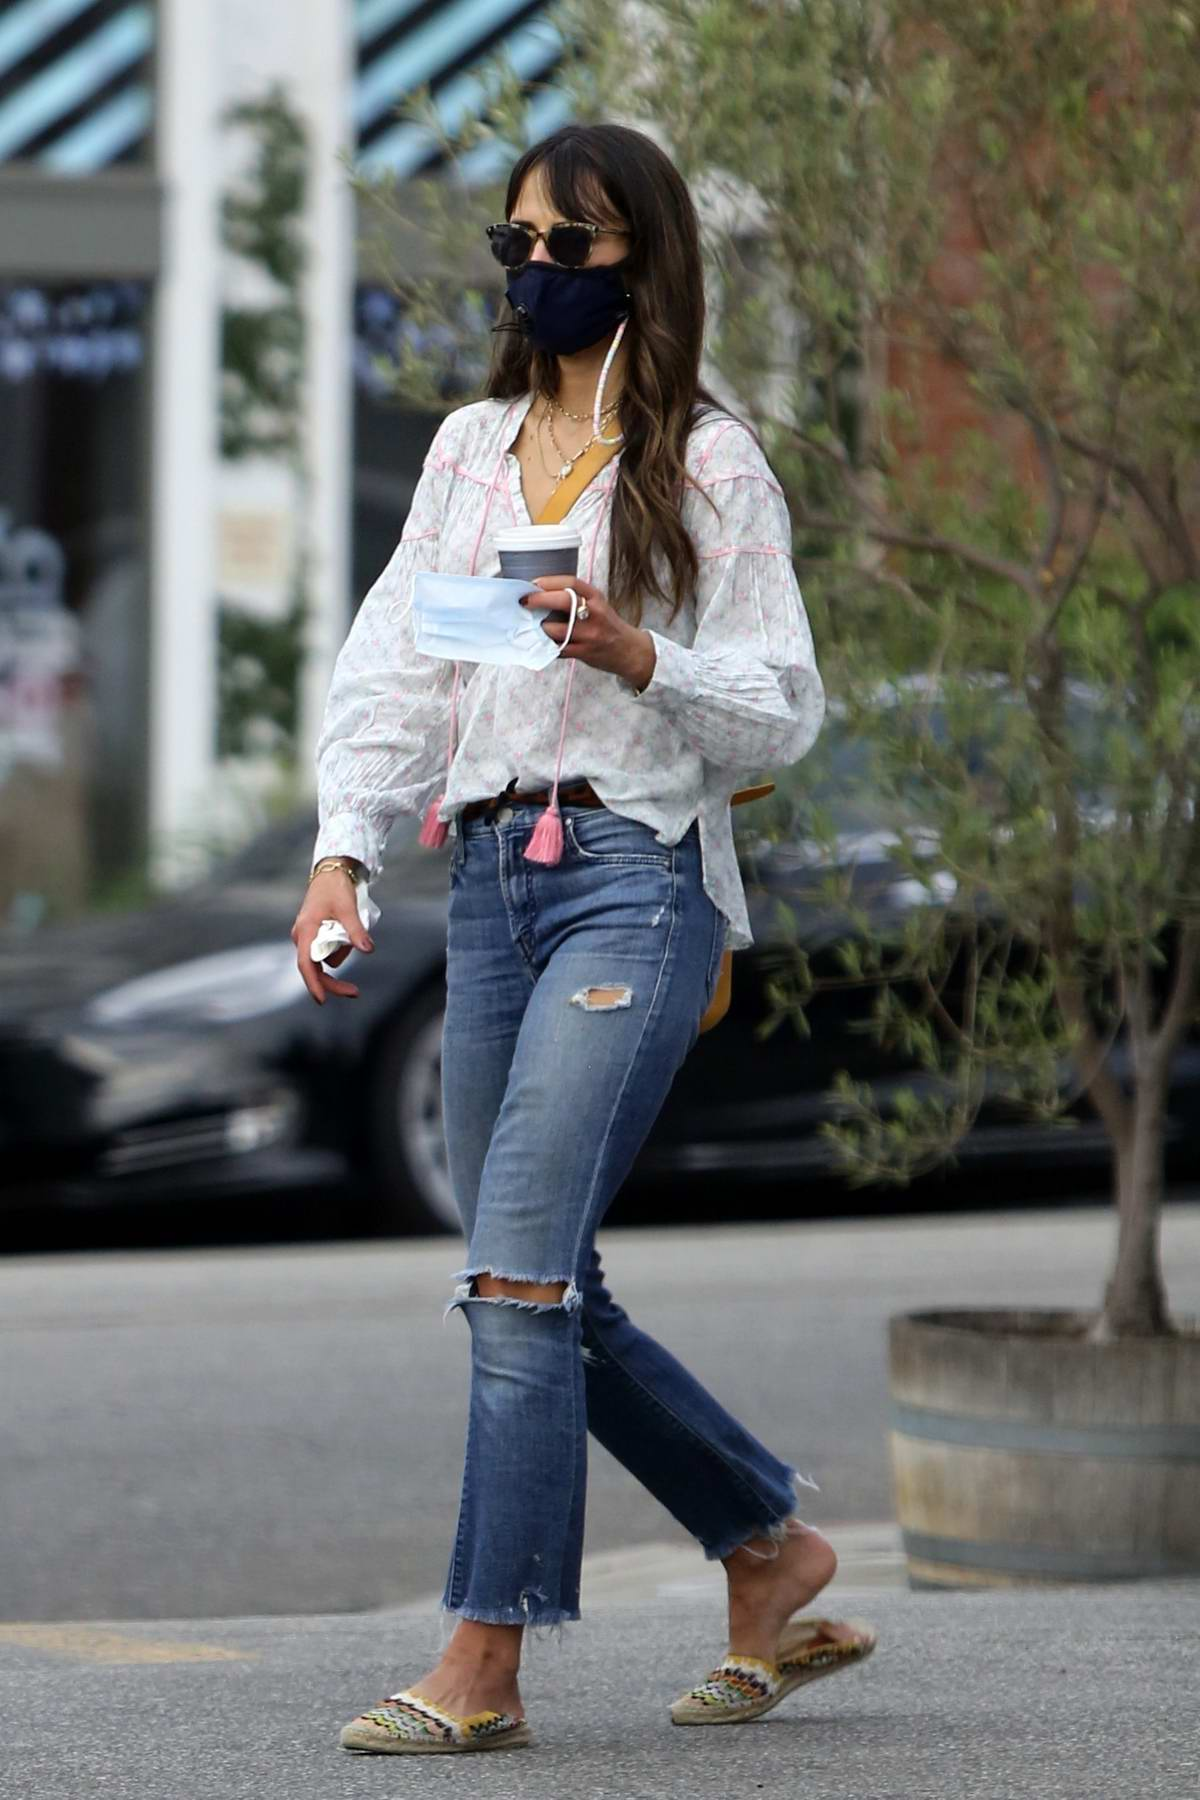 Jordana Brewster wears ripped jeans as she steps out for coffee in Brentwood, California